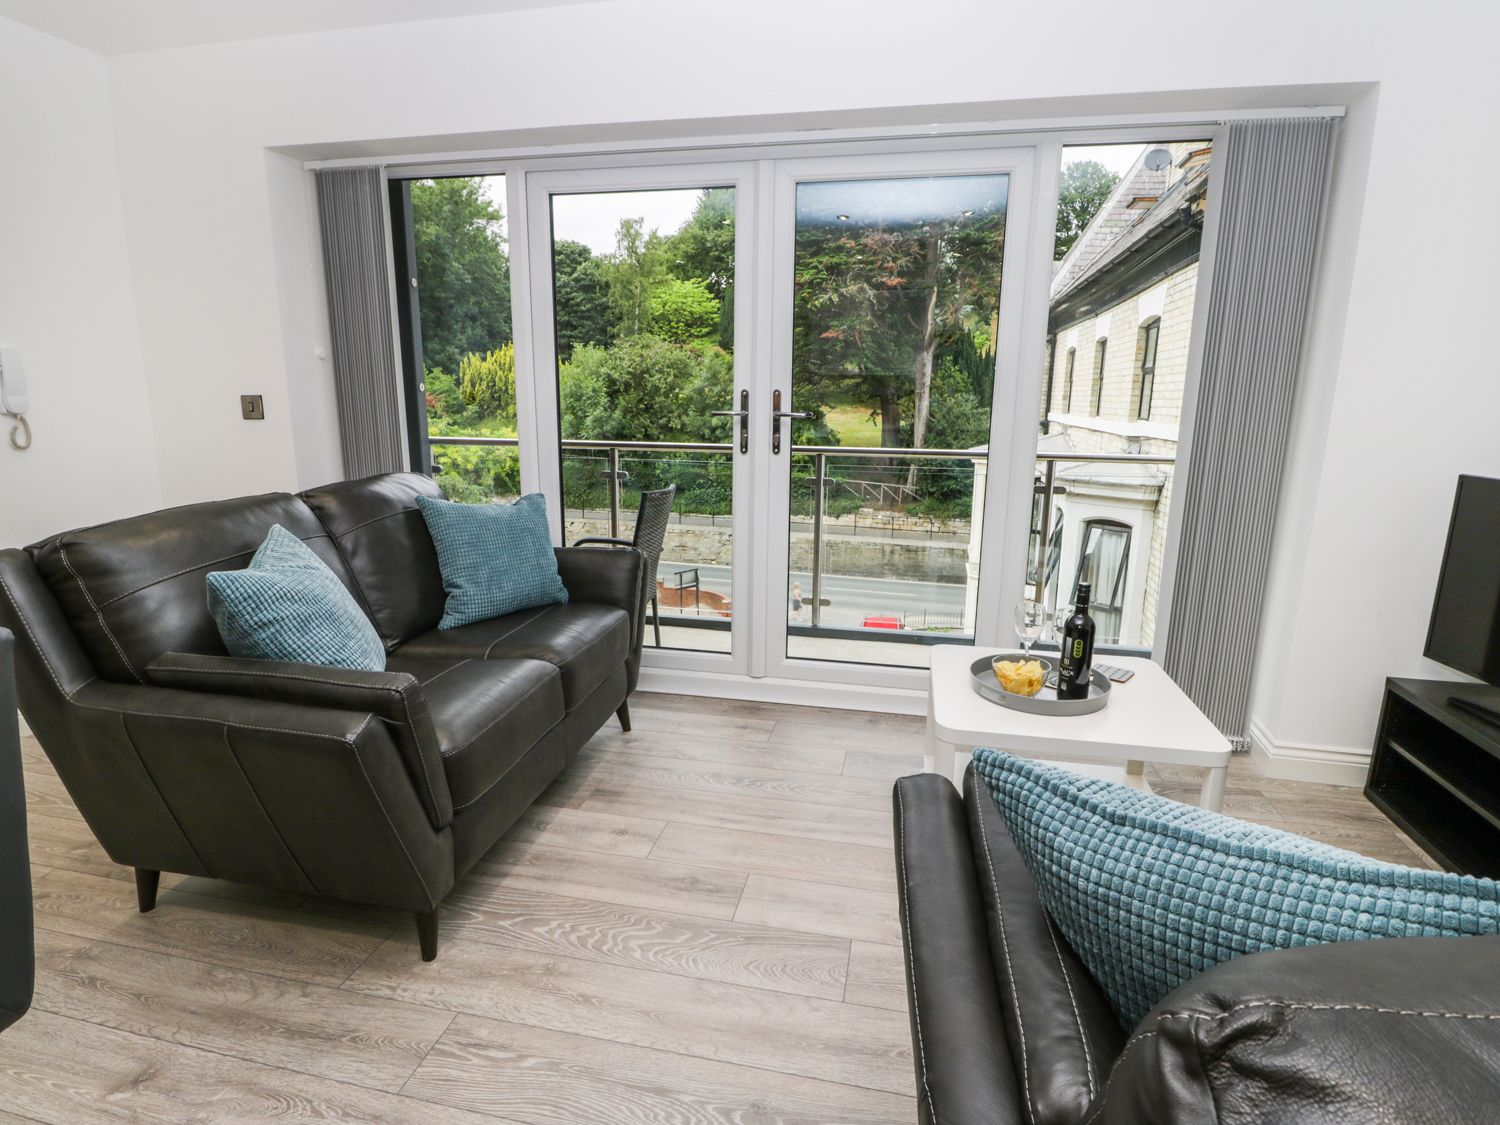 Apartment 2 in Whitby - sleeps 4 people